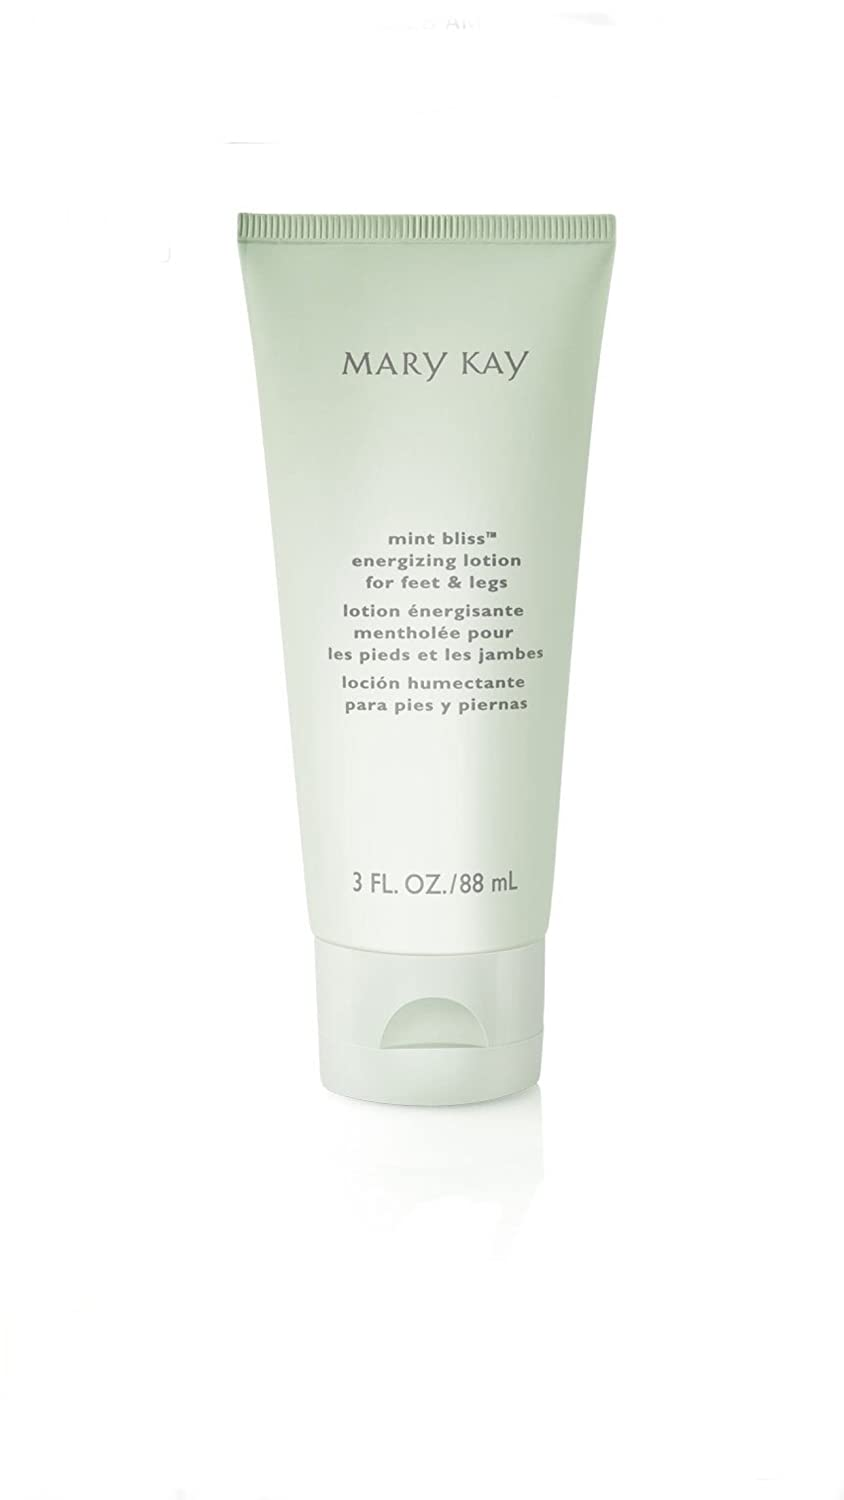 Mary Kay Private Spa Collection Mint Bliss Energizing Lotion for Feet & Legs, 3 oz